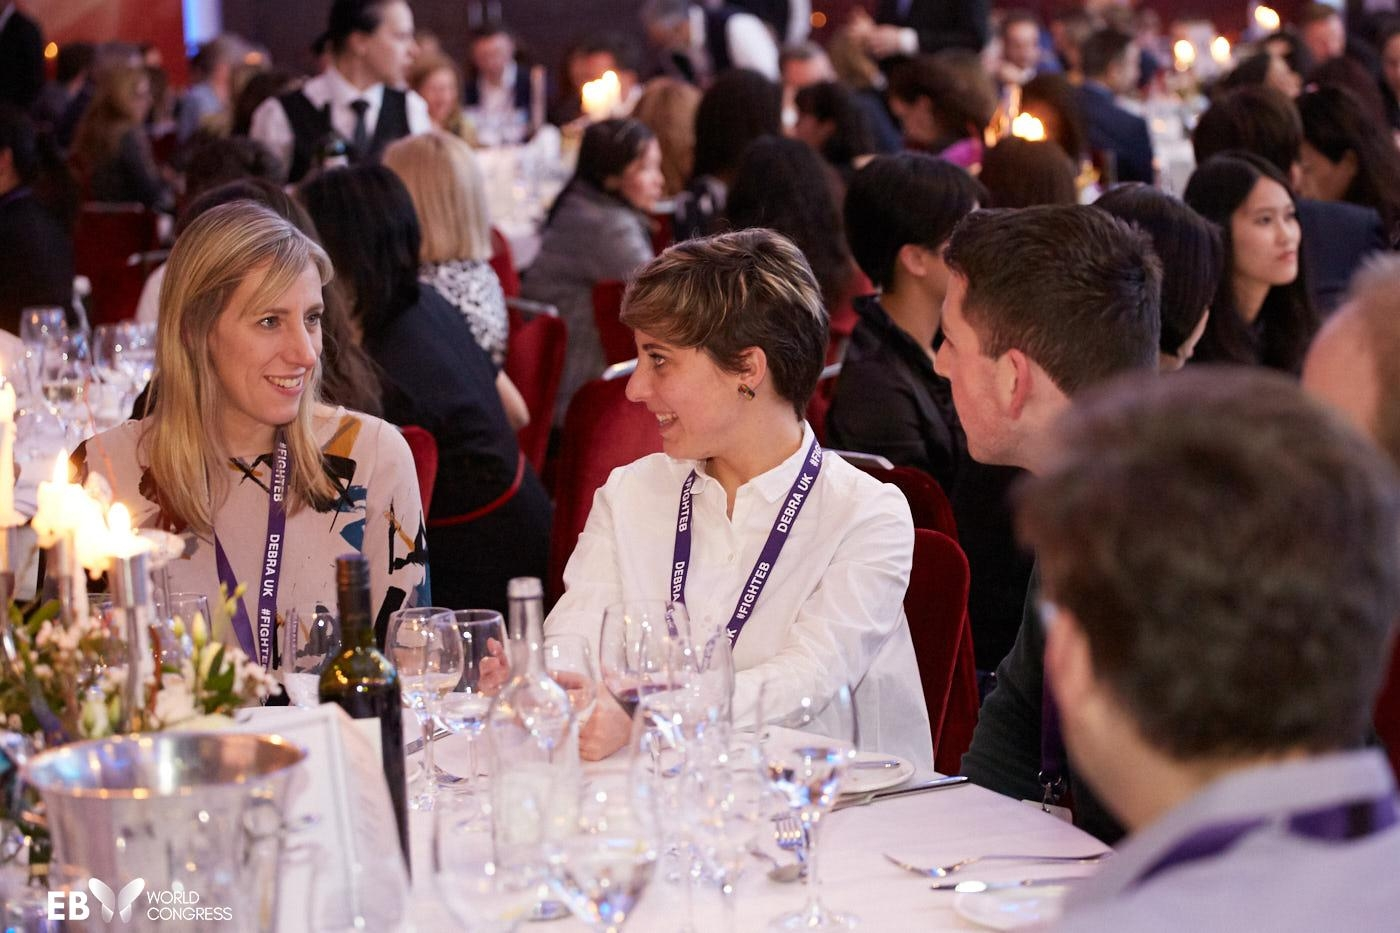 conference dinner, meetings, side fora, events, EB2020, EB Congress, EB World Congress, Blisters, Genetic, Skin, Wounds